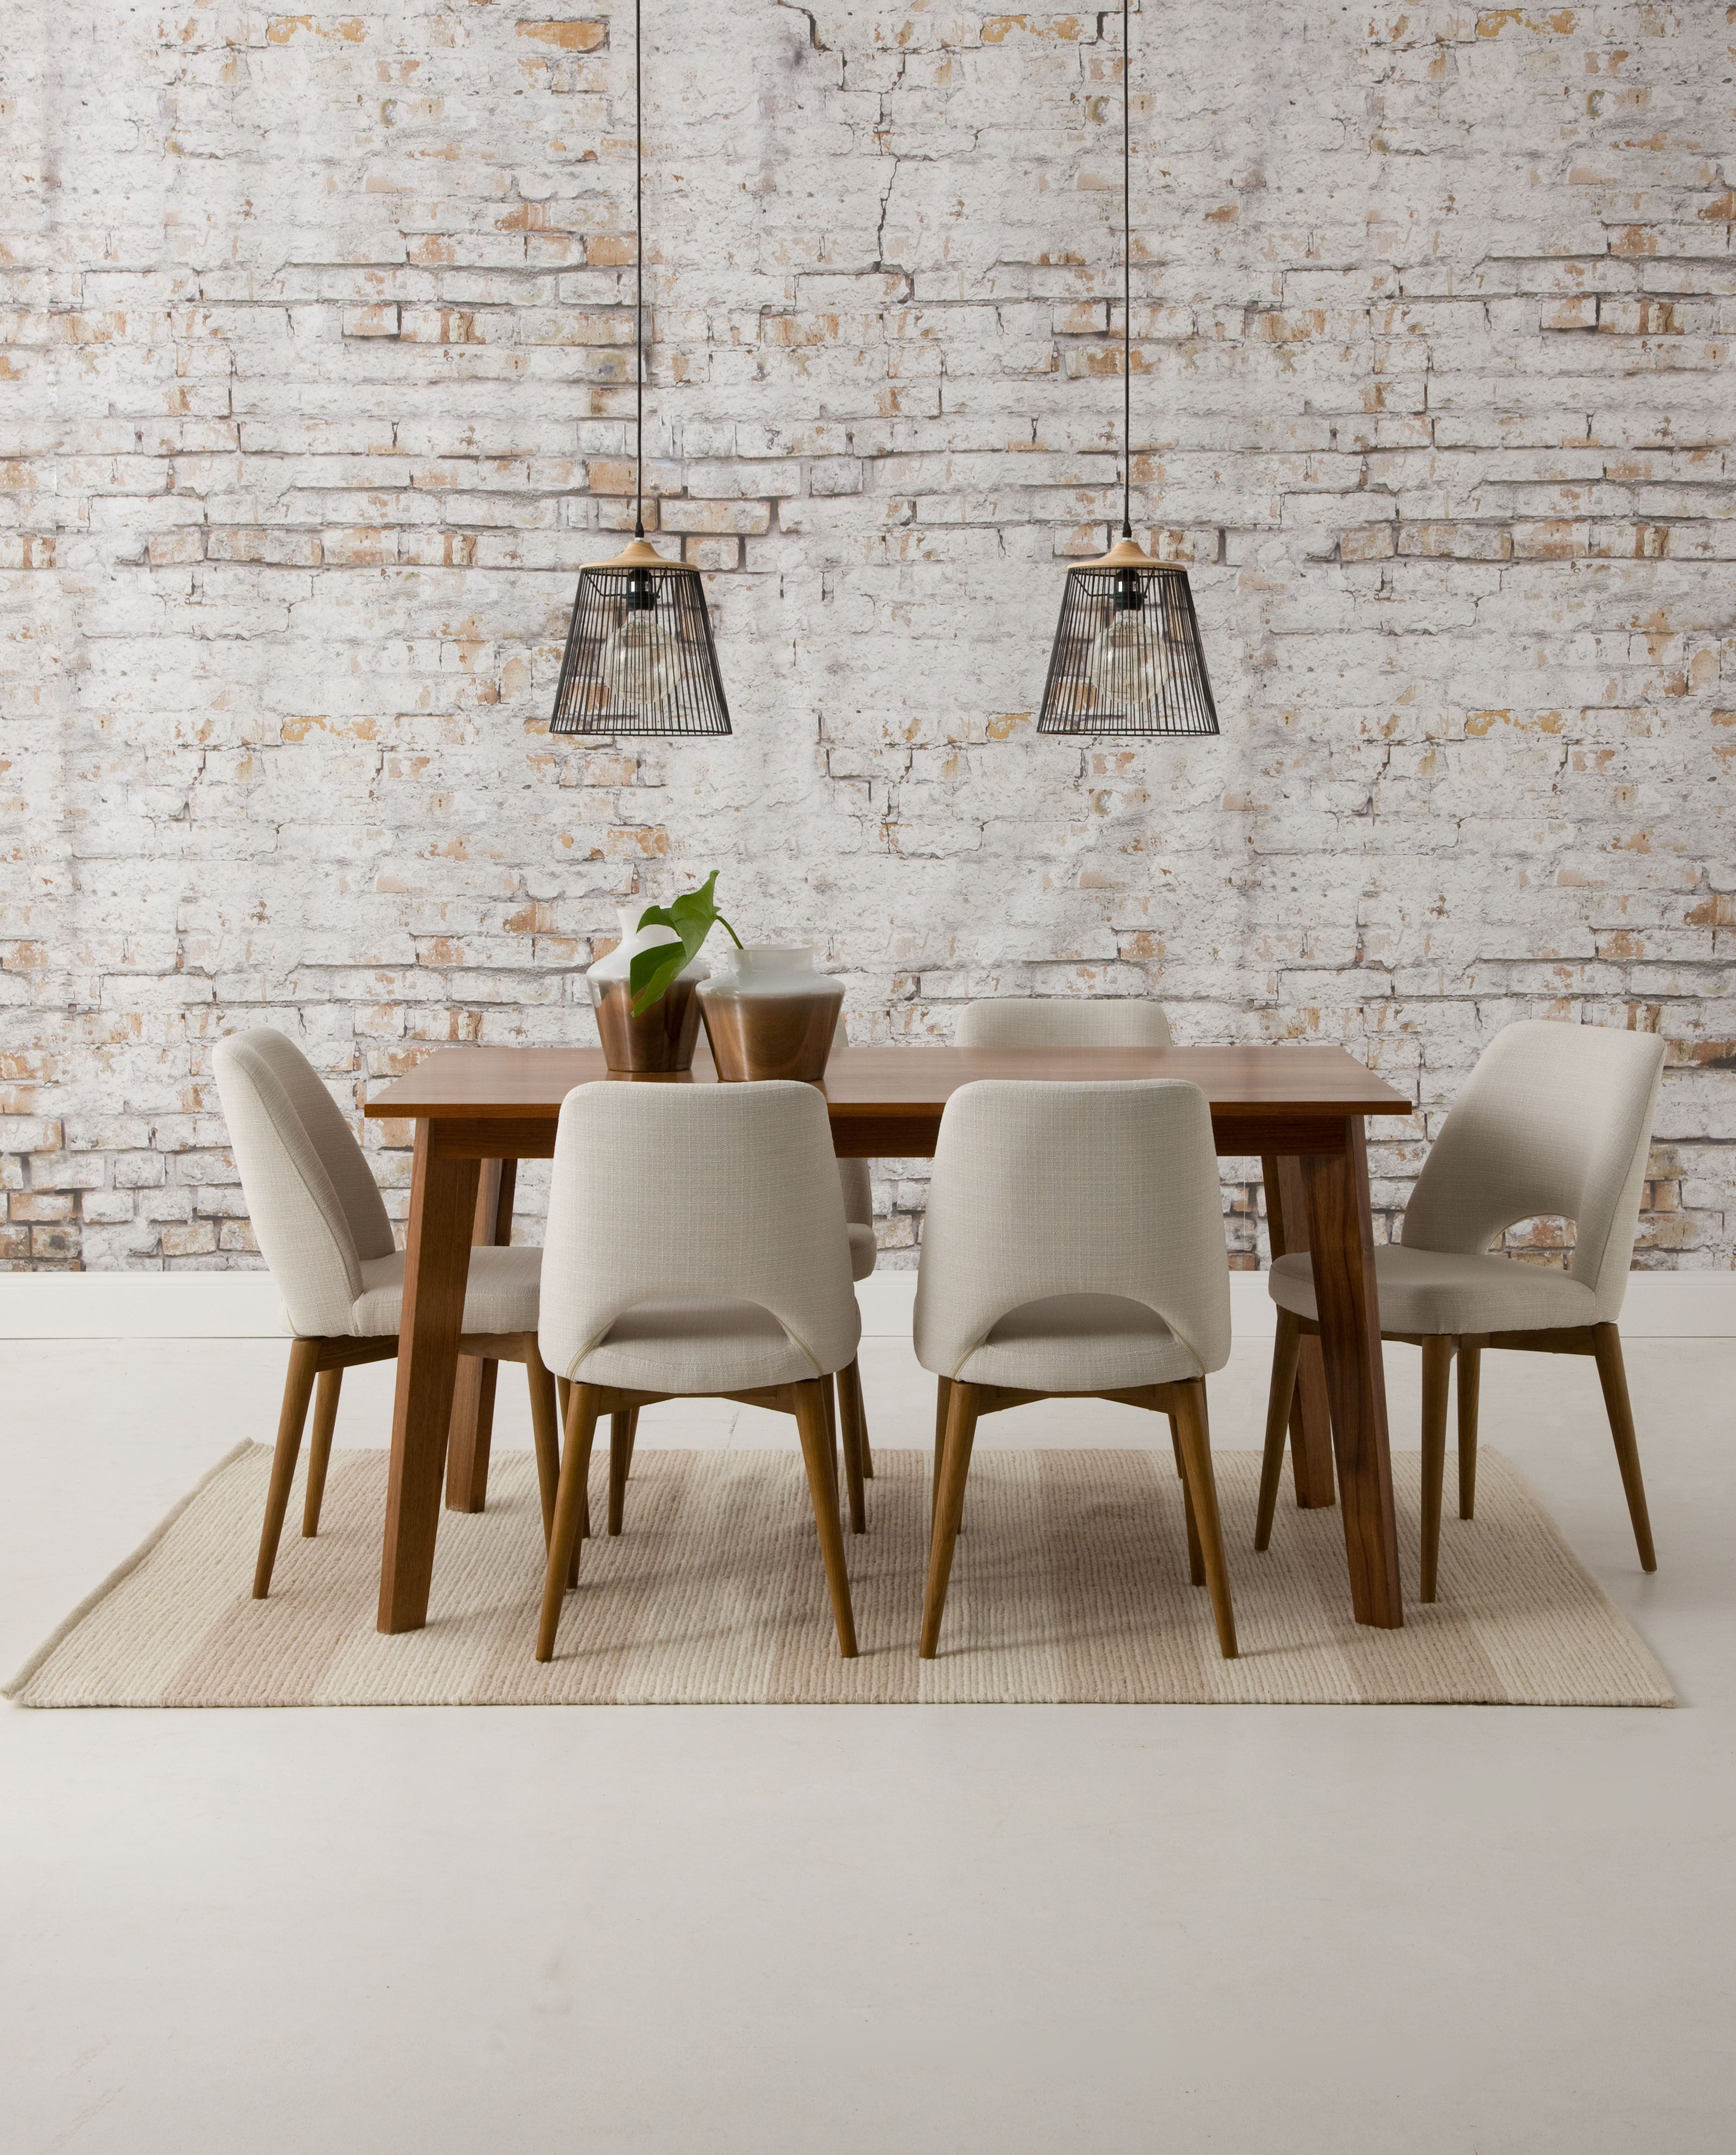 jarvis chair oz design out door chairs carson dining table and interior pinterest